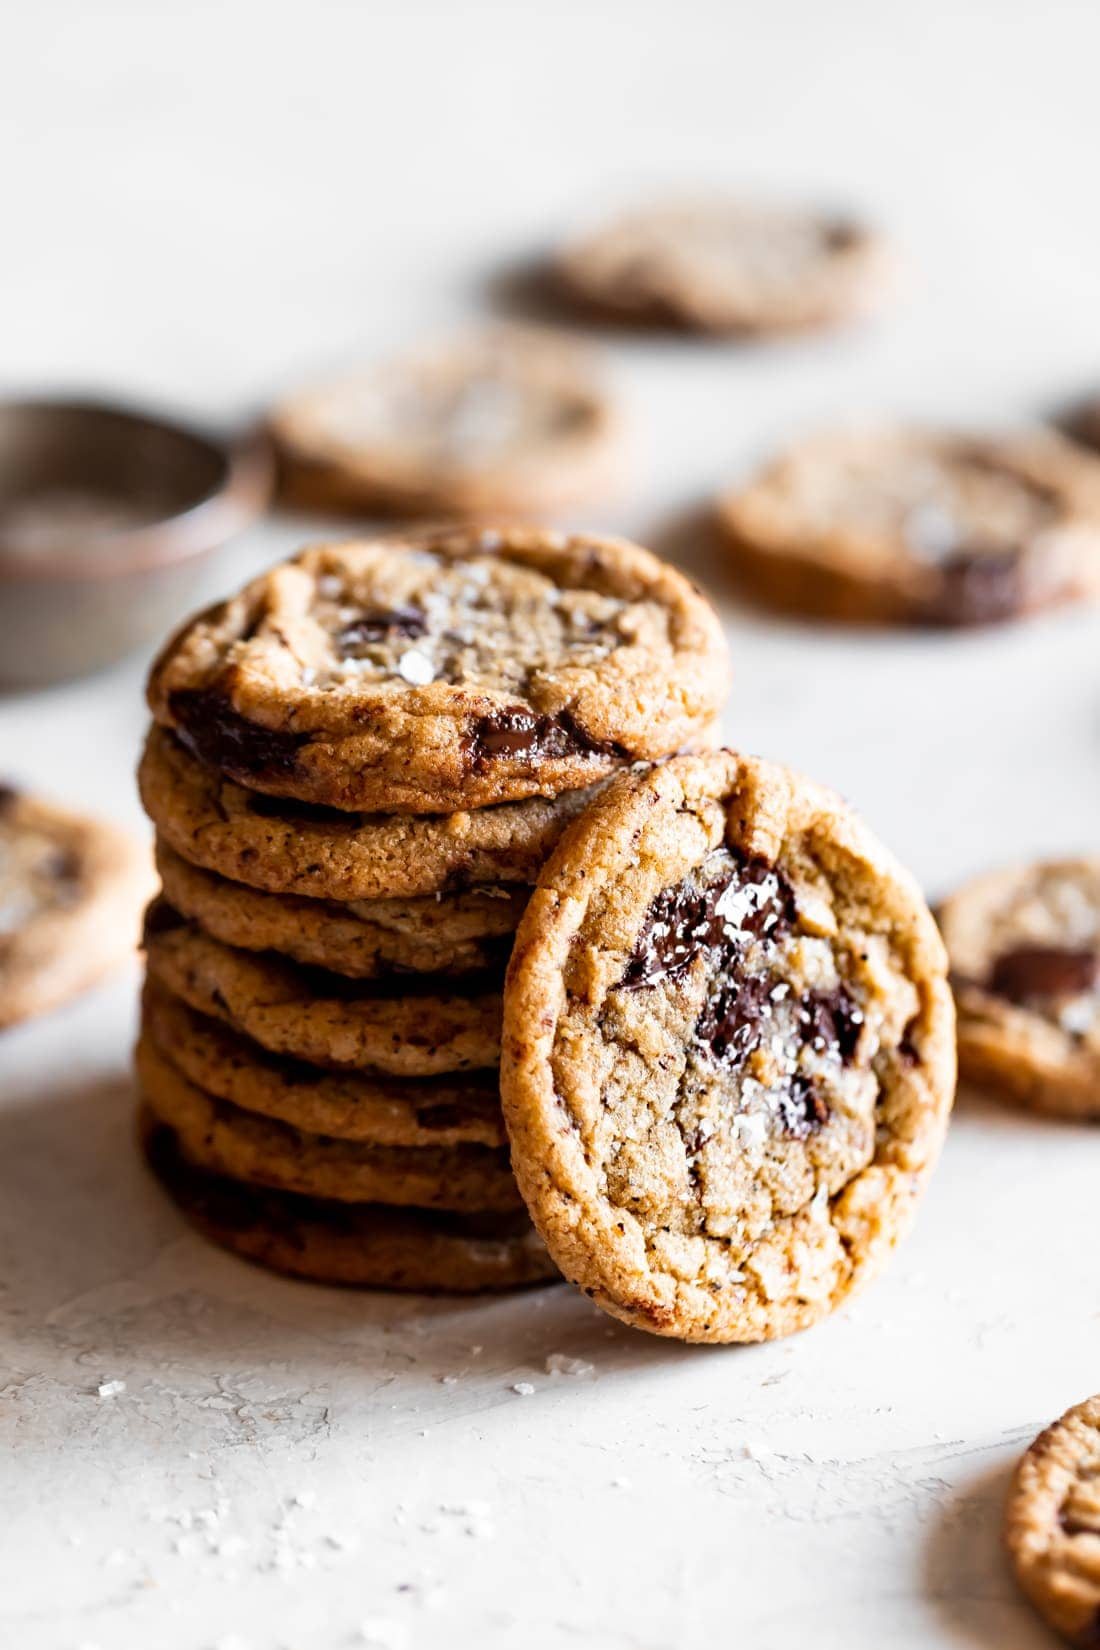 brown butter chocolate chip cookies stacked on top of each other on white background